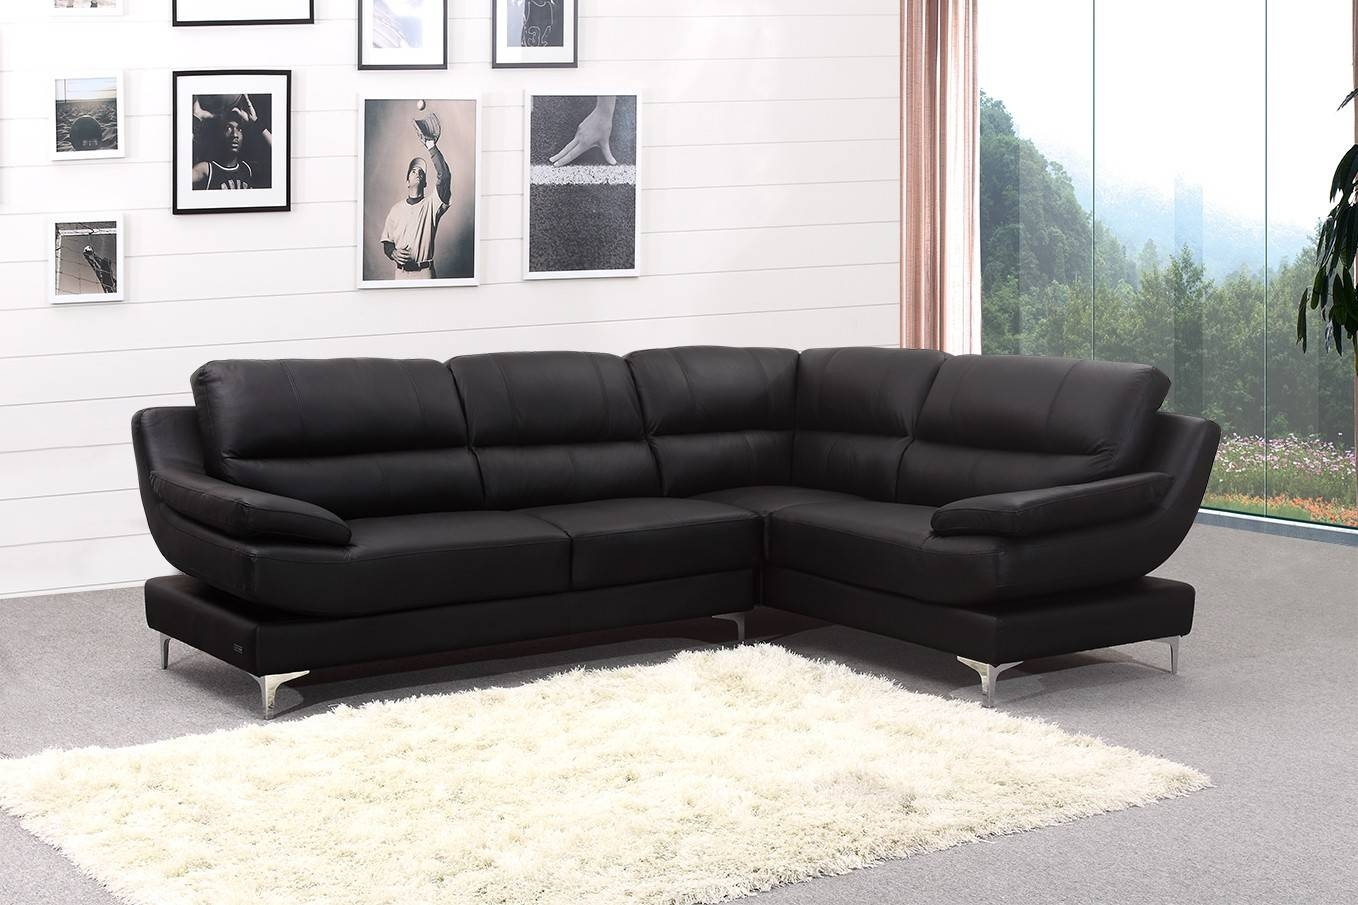 Stylish Leather Corner Sofa Cheap Leather Corner Sofa For Sale With Cheap Corner Sofa (View 29 of 30)